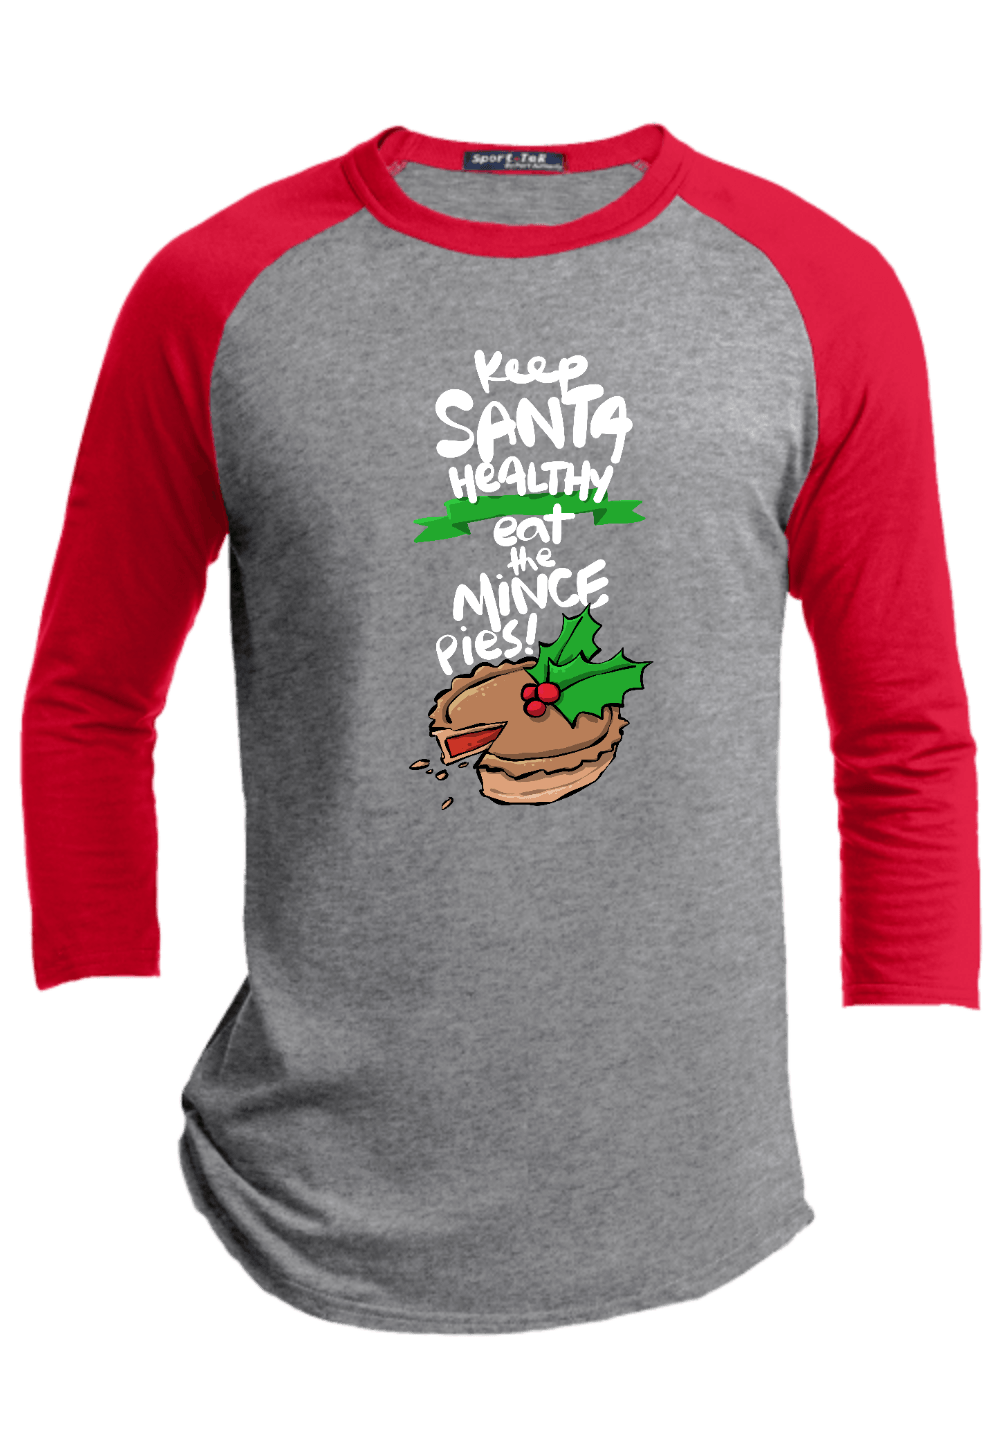 Keep Santa Healthy Eat the Mince Pies Youth Christmas Raglans